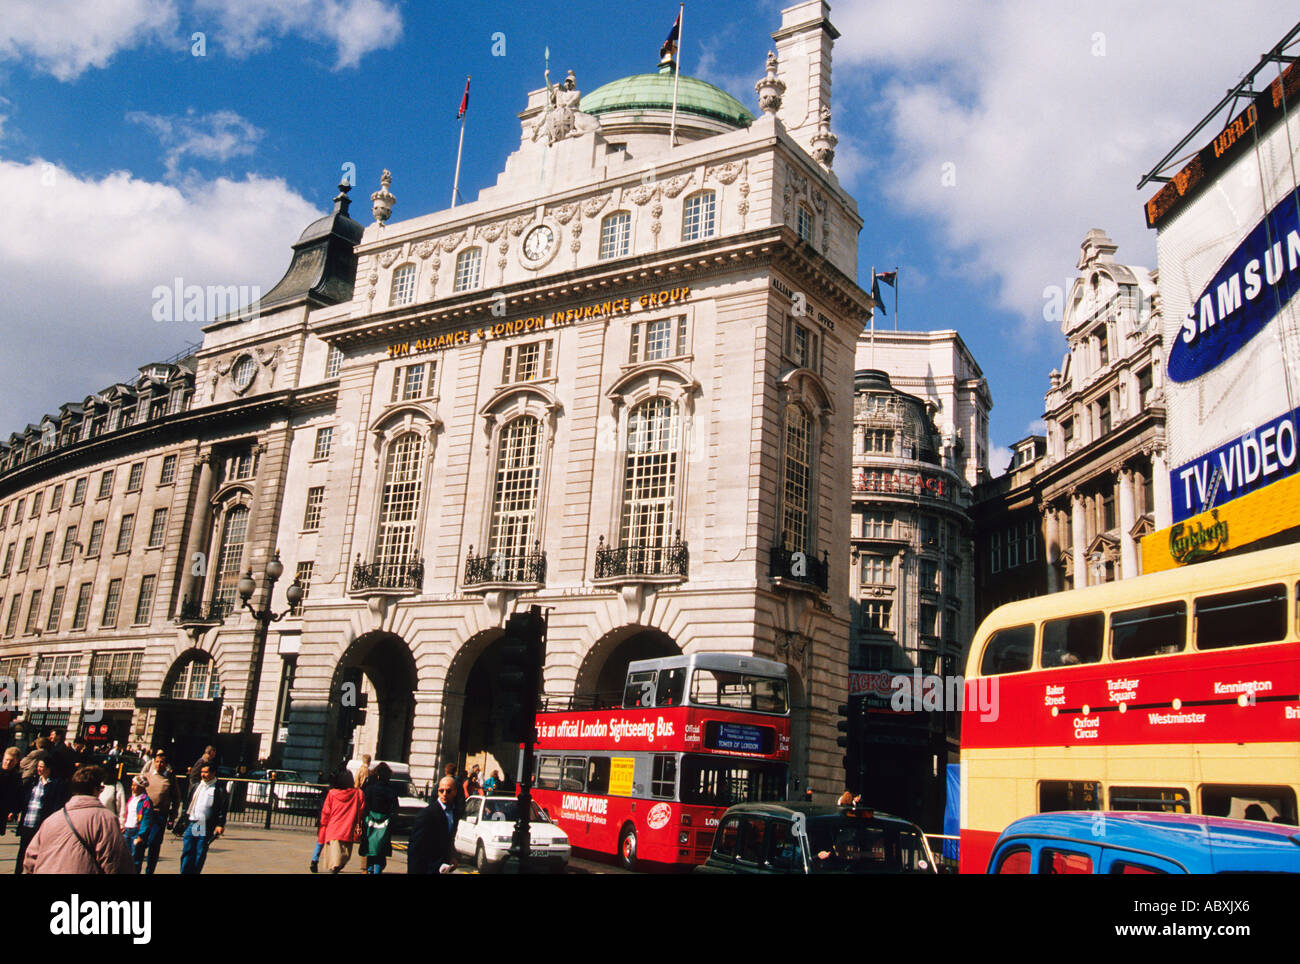 England Great Britain United Kingdom London Piccadilly Circus Double Decker Bus - Stock Image